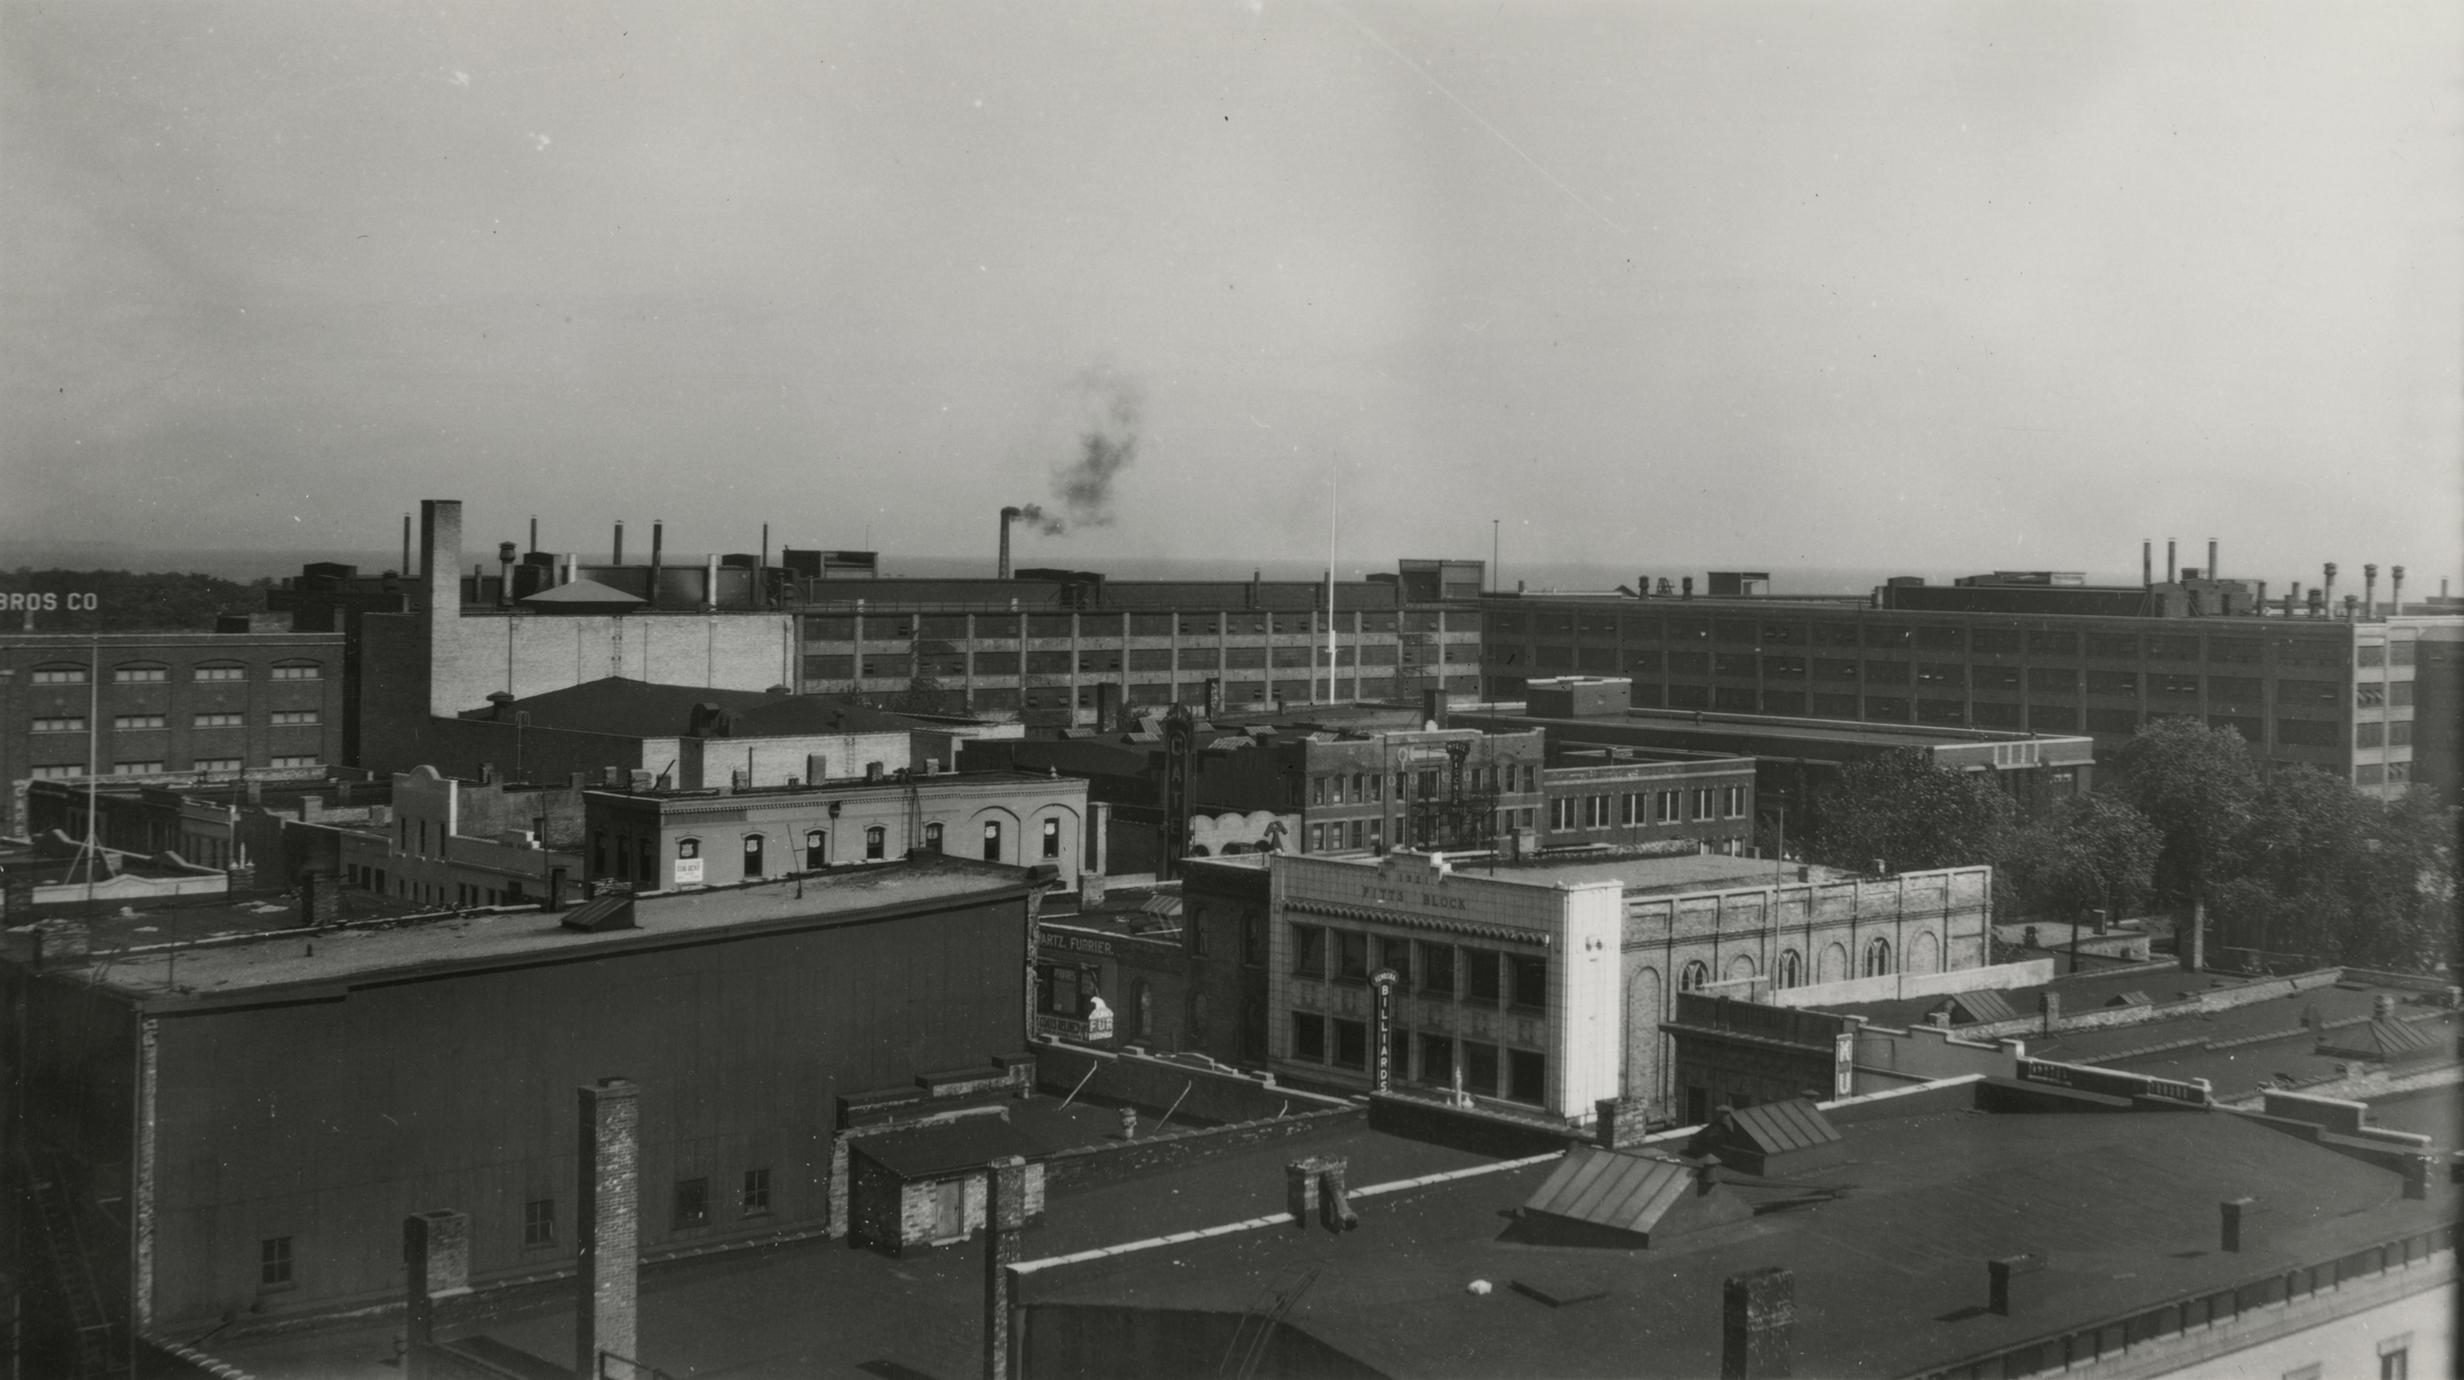 View of Simmons plant from downtown Kenosha